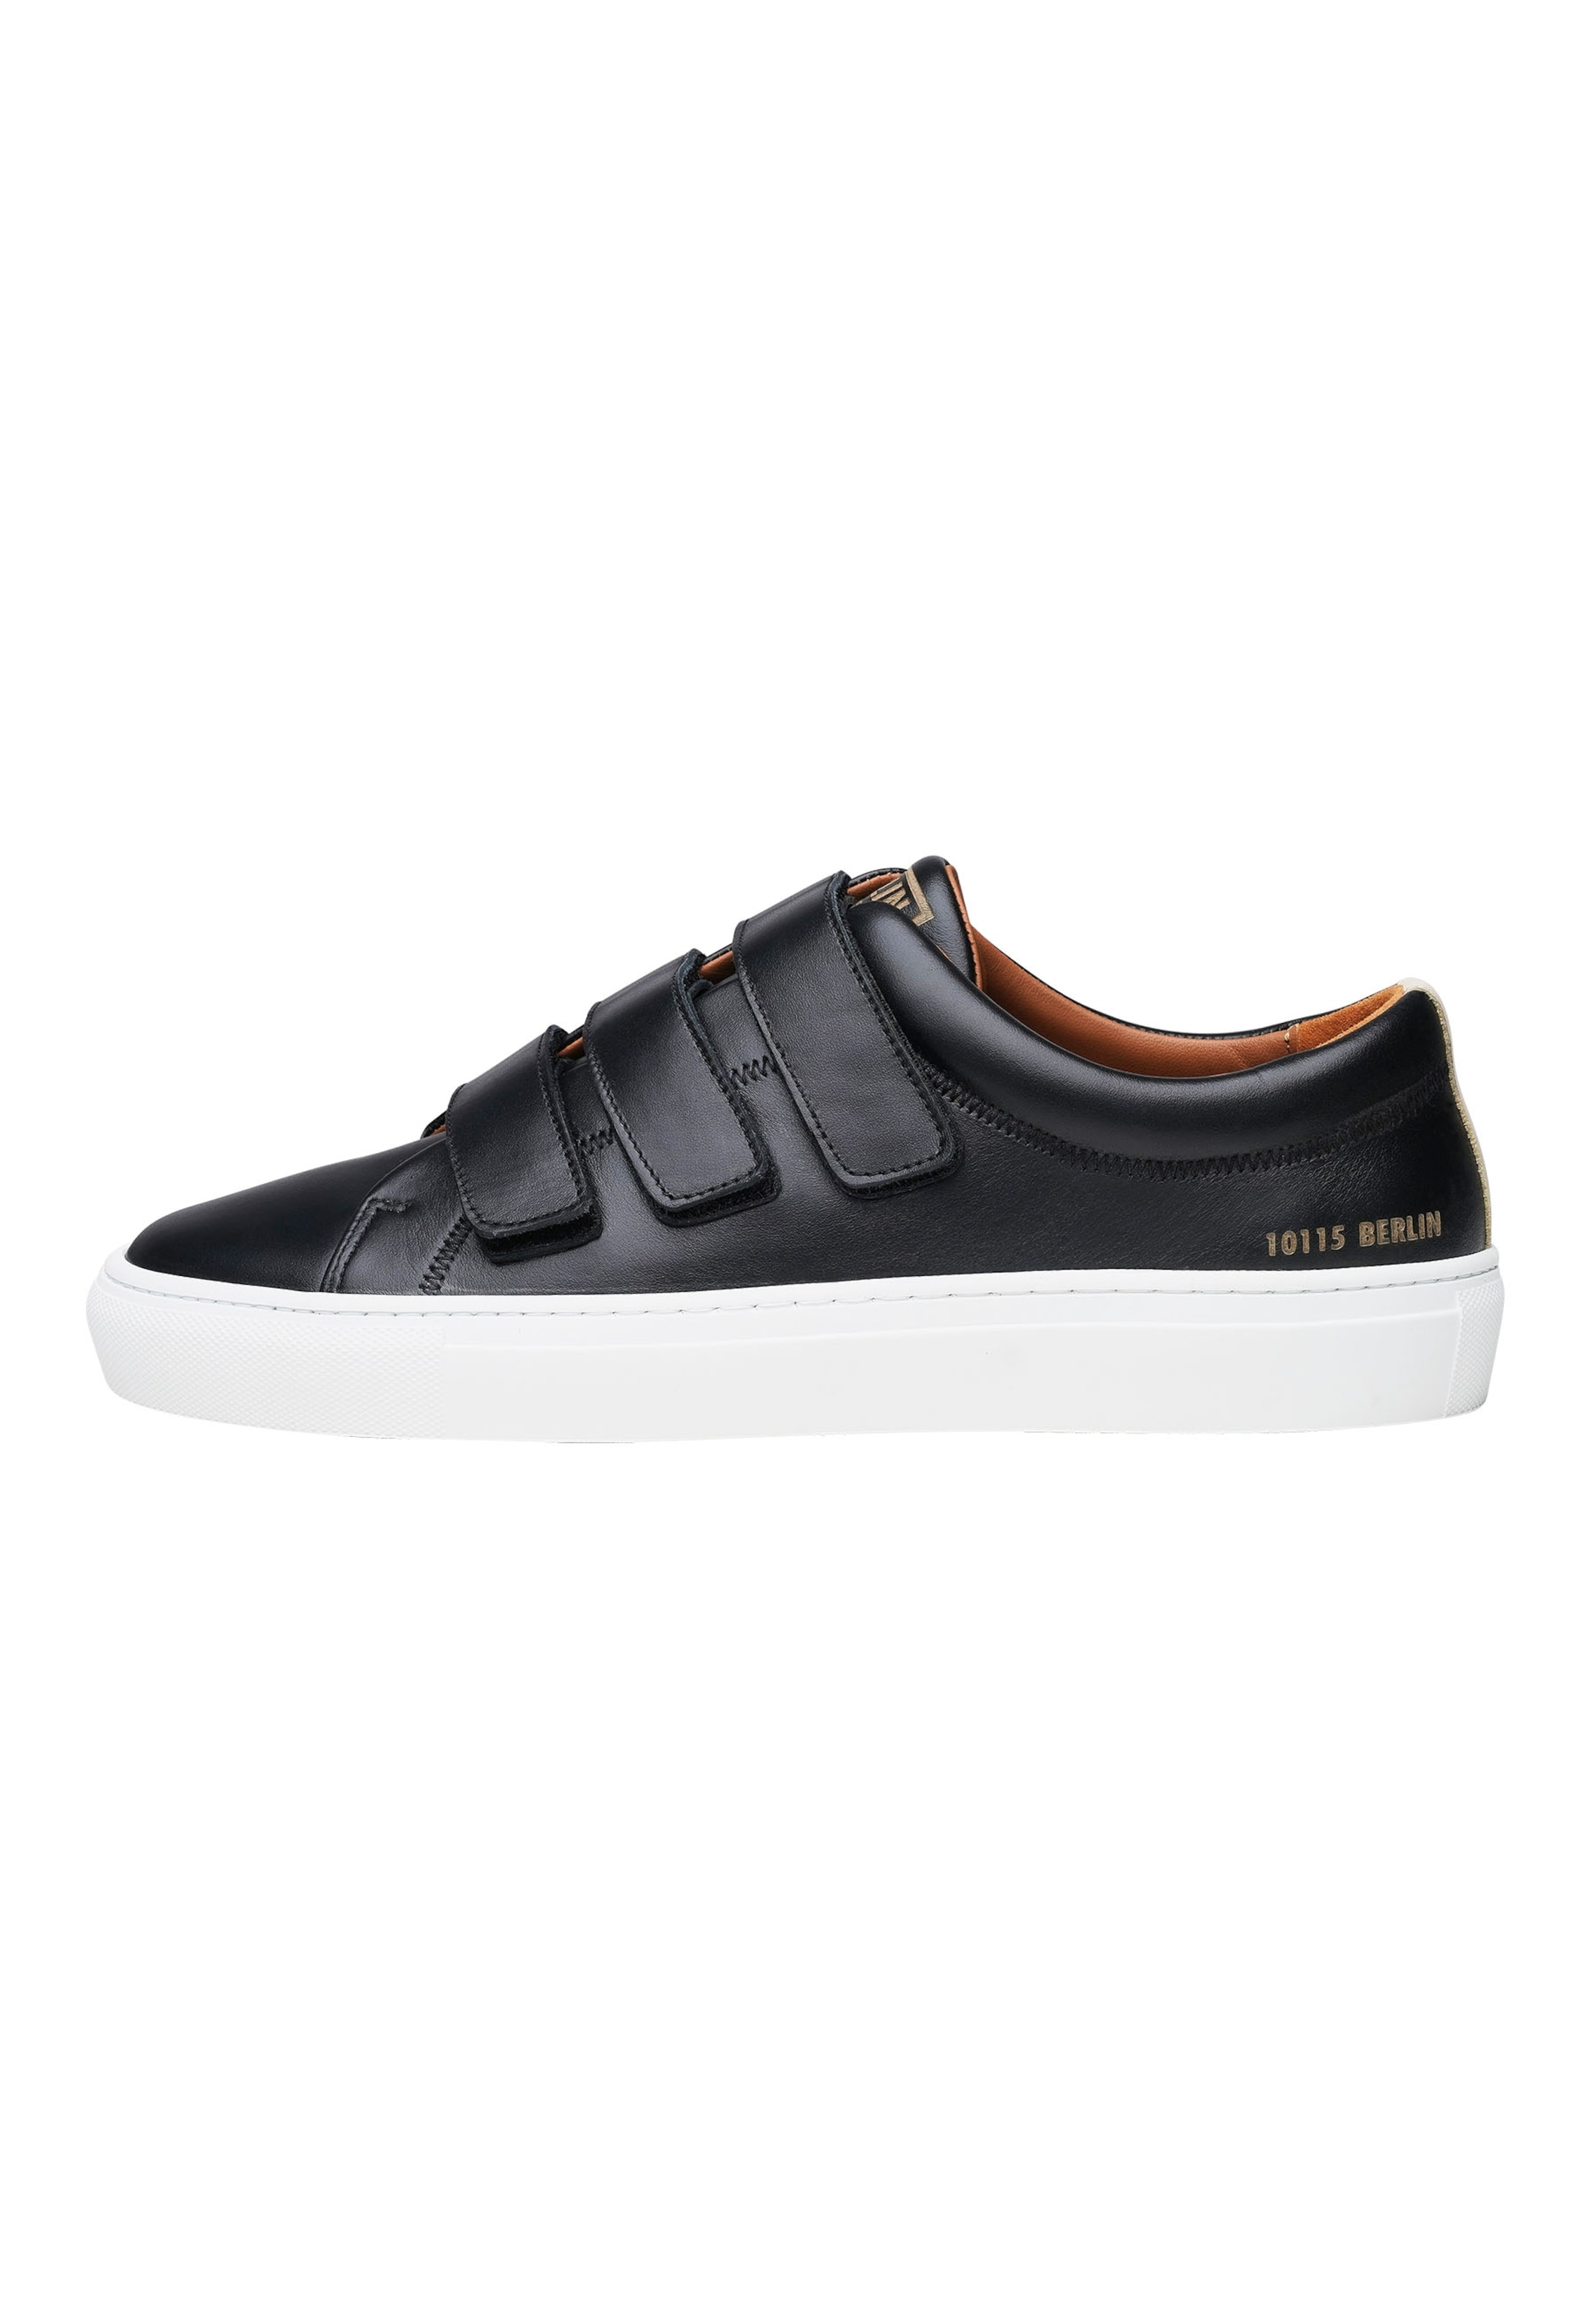 Schwarz Sneaker In 'no71 Ms' Shoepassion tQBrsdCxh